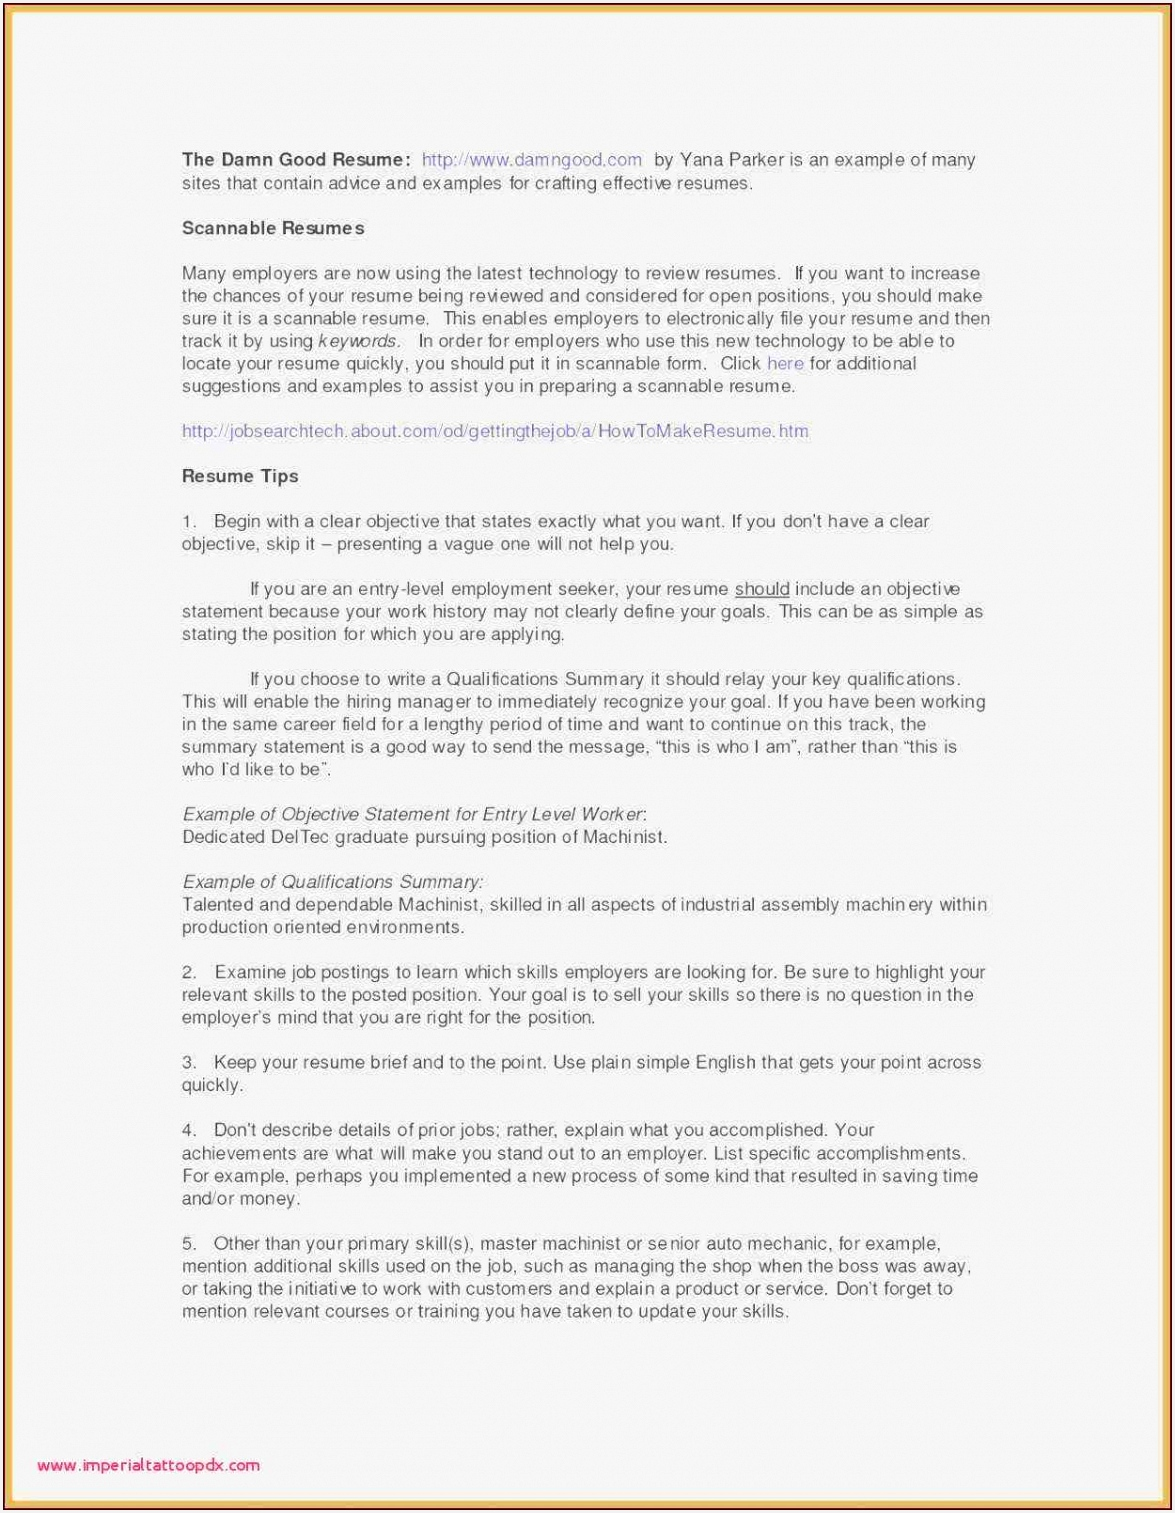 Freelance Project Manager Sample Resume Otzkf Awesome Free Collection 59 Swppp Template New Of 4 Freelance Project Manager Sample Resume